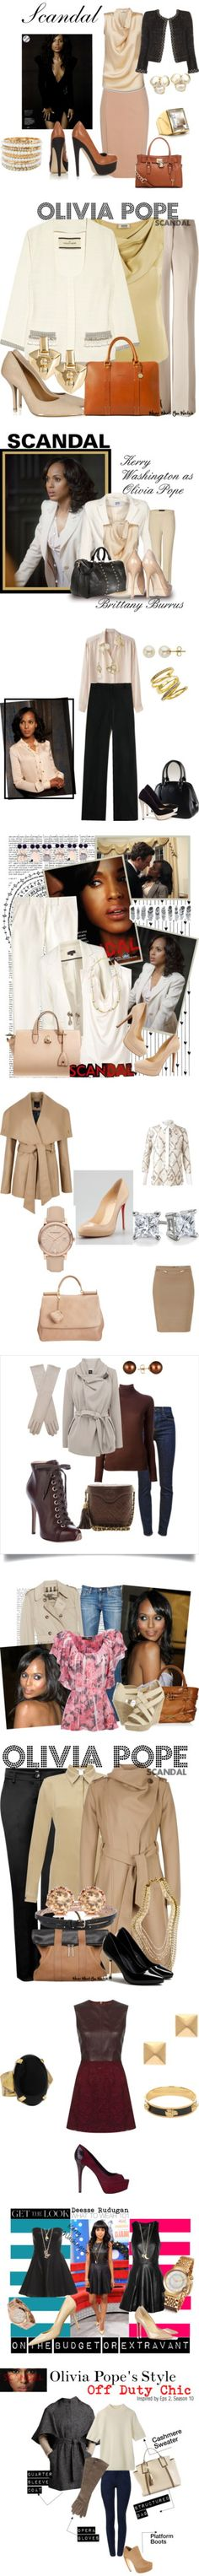 """Kerry Washington (Olivia Pope) Styles"" by fashionexplorer-890 on Polyvore"